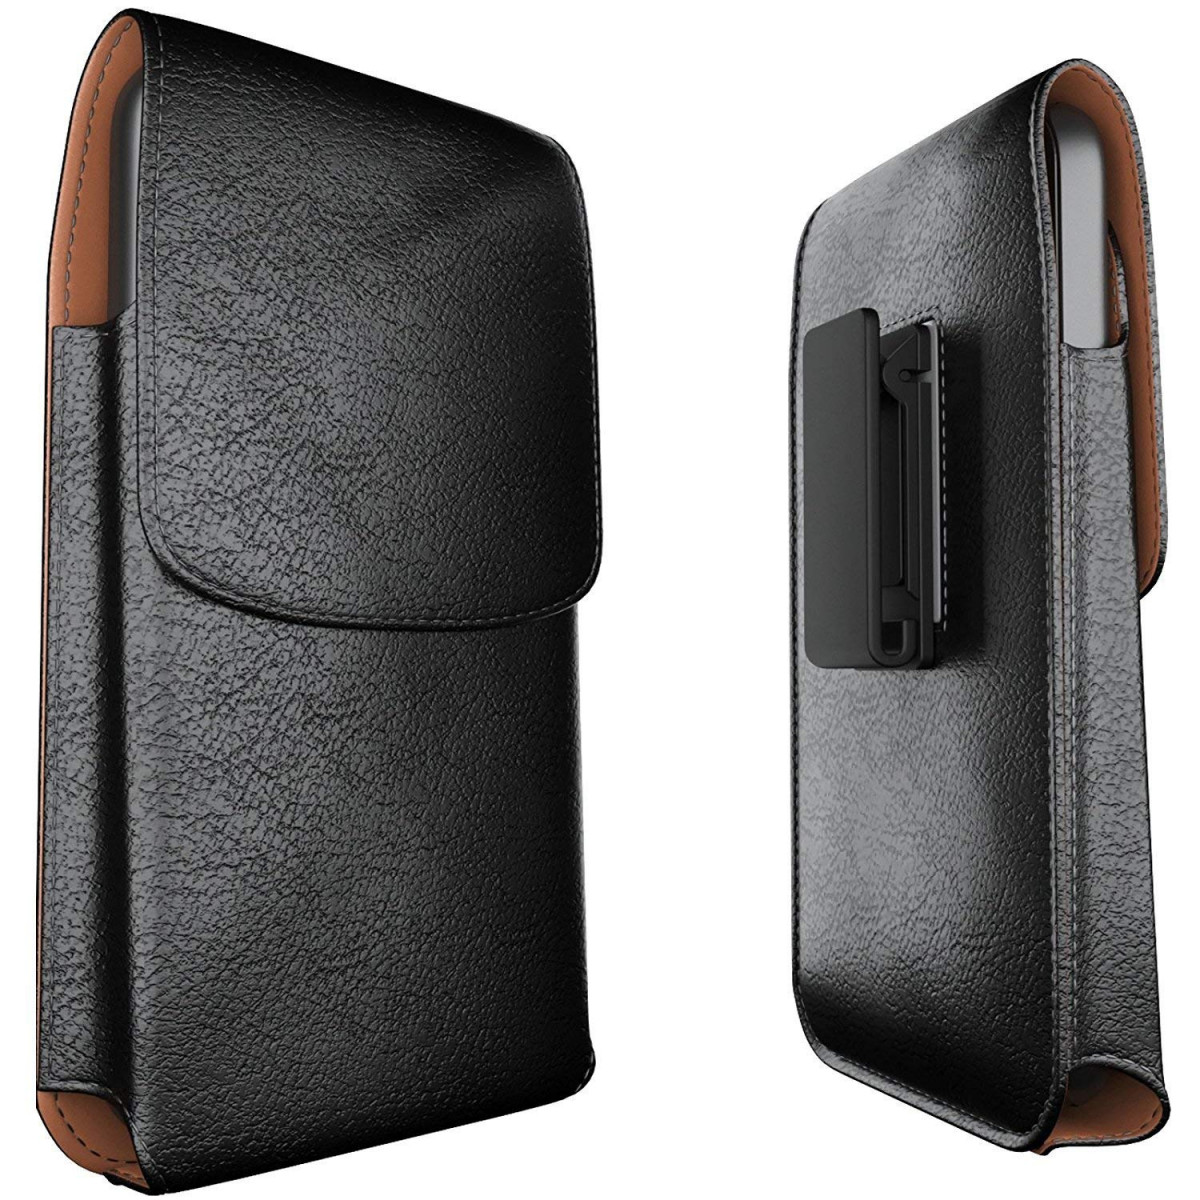 outlet store a1bc8 4185f Meilib Galaxy Note 8 Belt Case Note 9 Belt Clip Case - Leather Pouch Belt  Holster Case with Clip for Samsung Galaxy Note 9 / Note 8 (Fits Phone  w/Thin ...